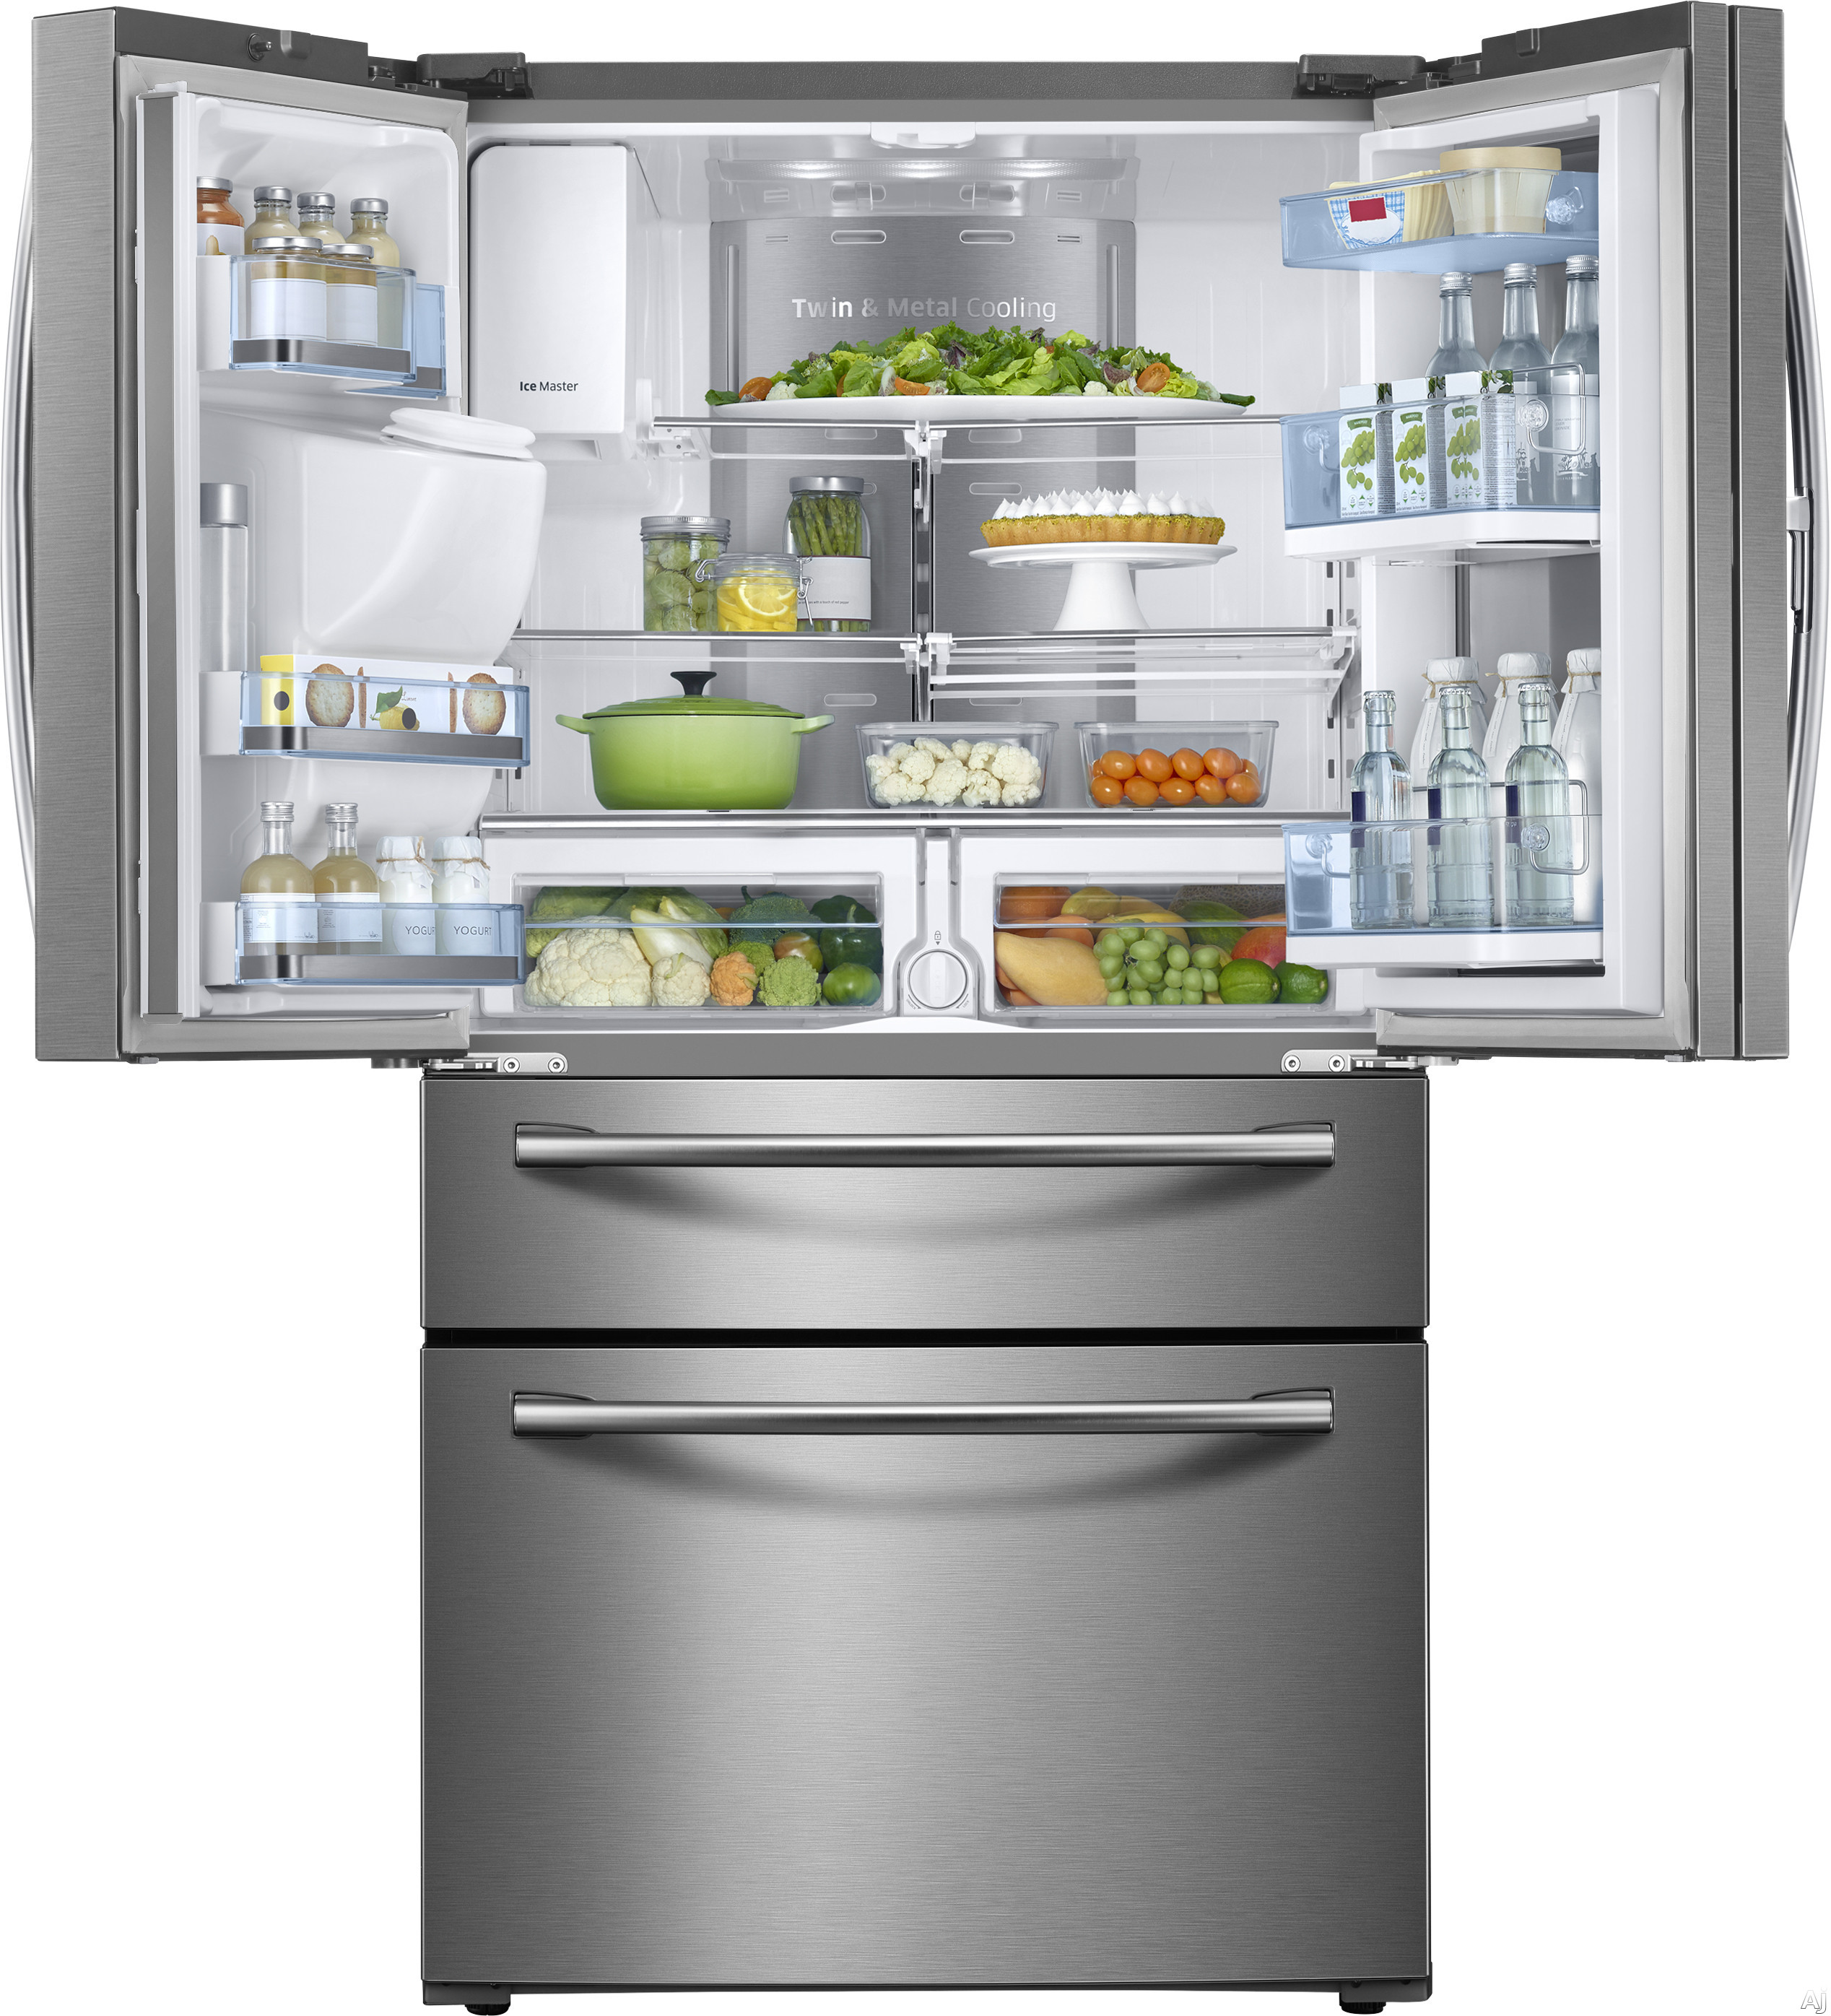 Samsung Rf28jbed 28 Cu Ft French Door Refrigerator With